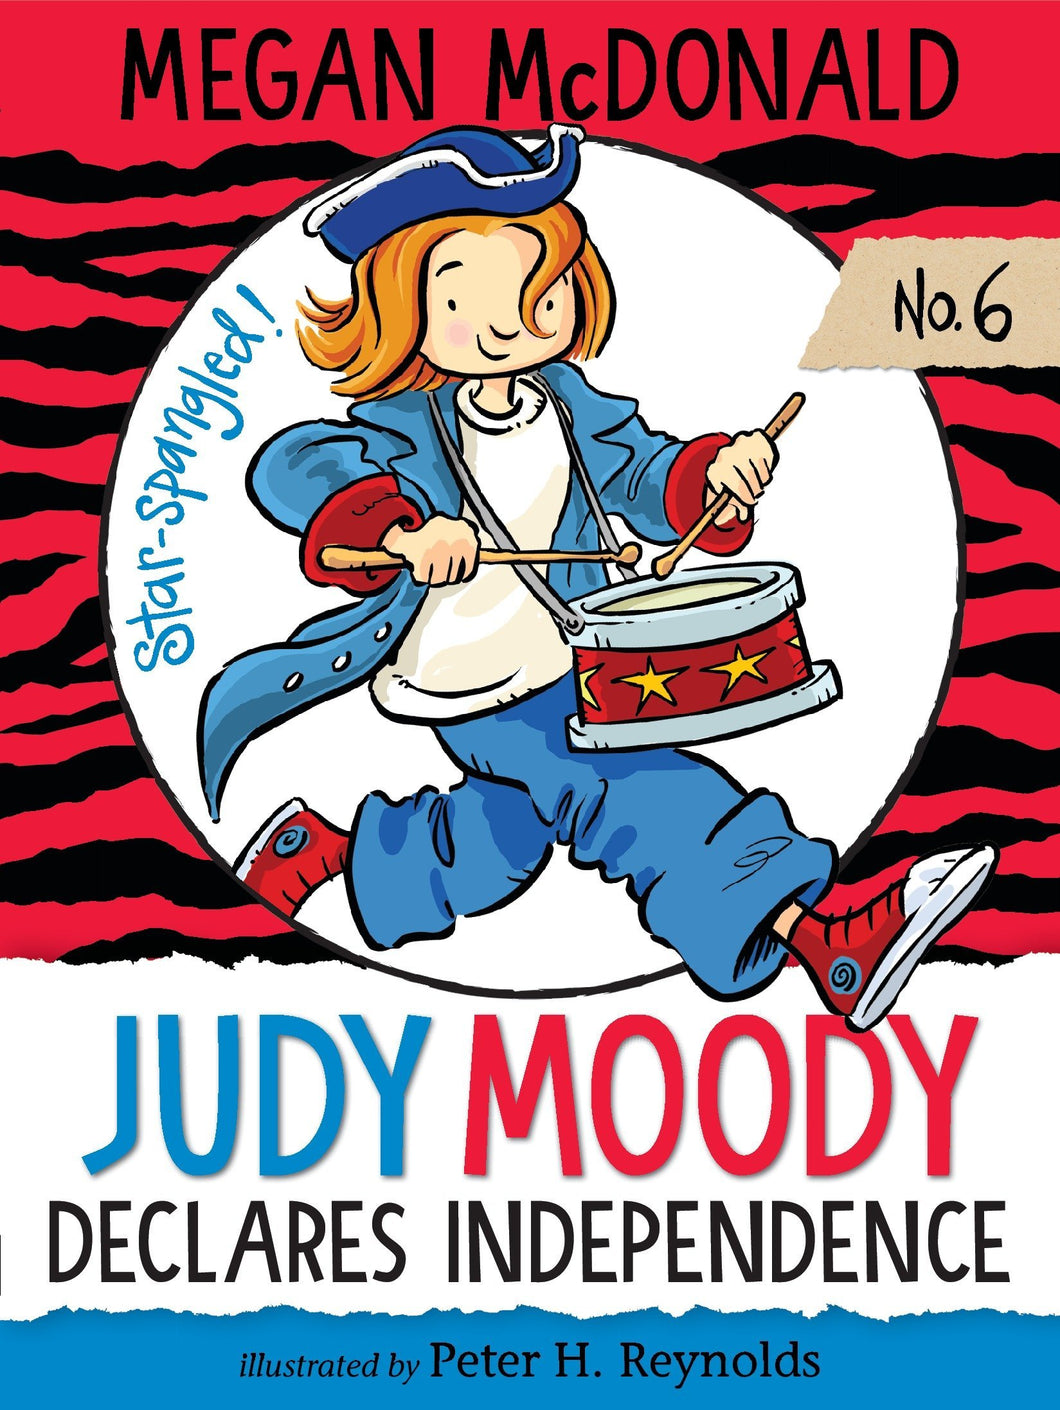 Judy Moody Declares Independence (Book 6)